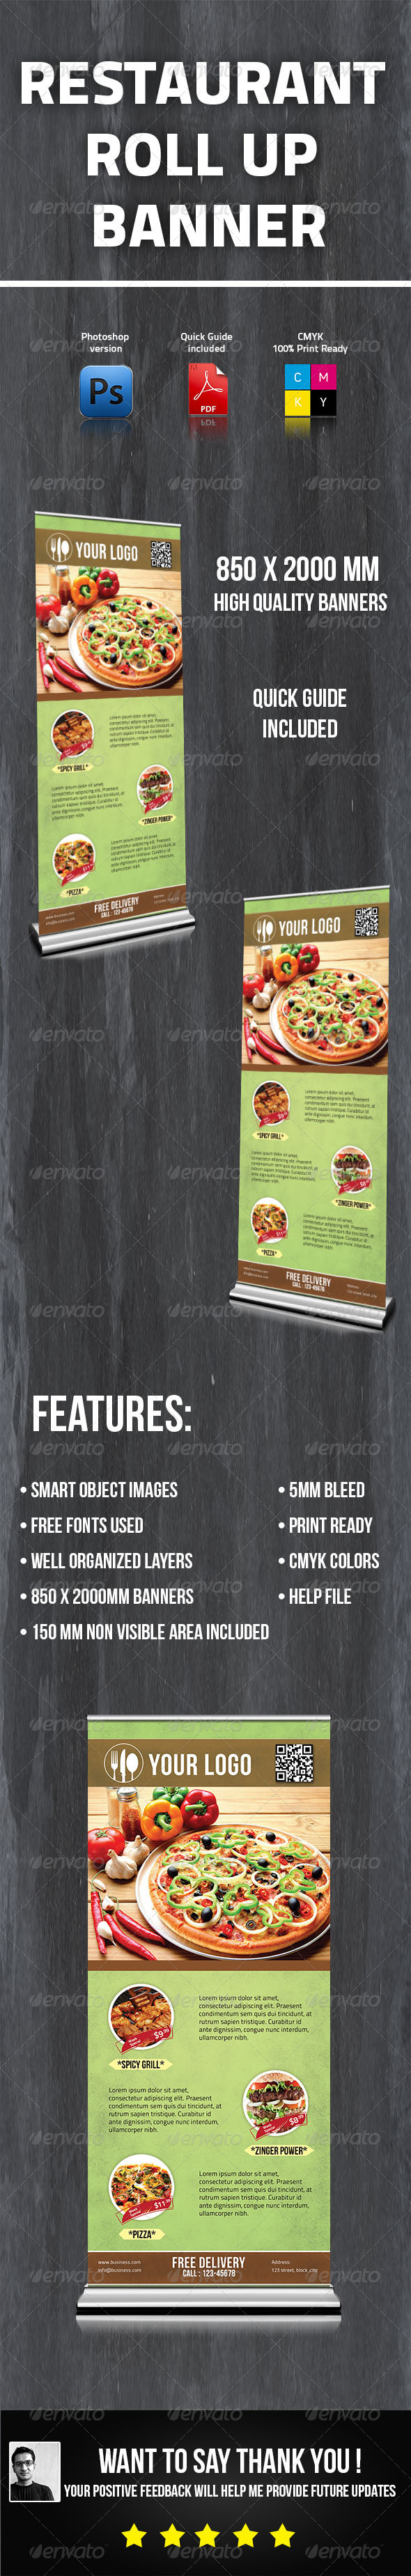 Restaurant Roll Up Banner - Signage Print Templates